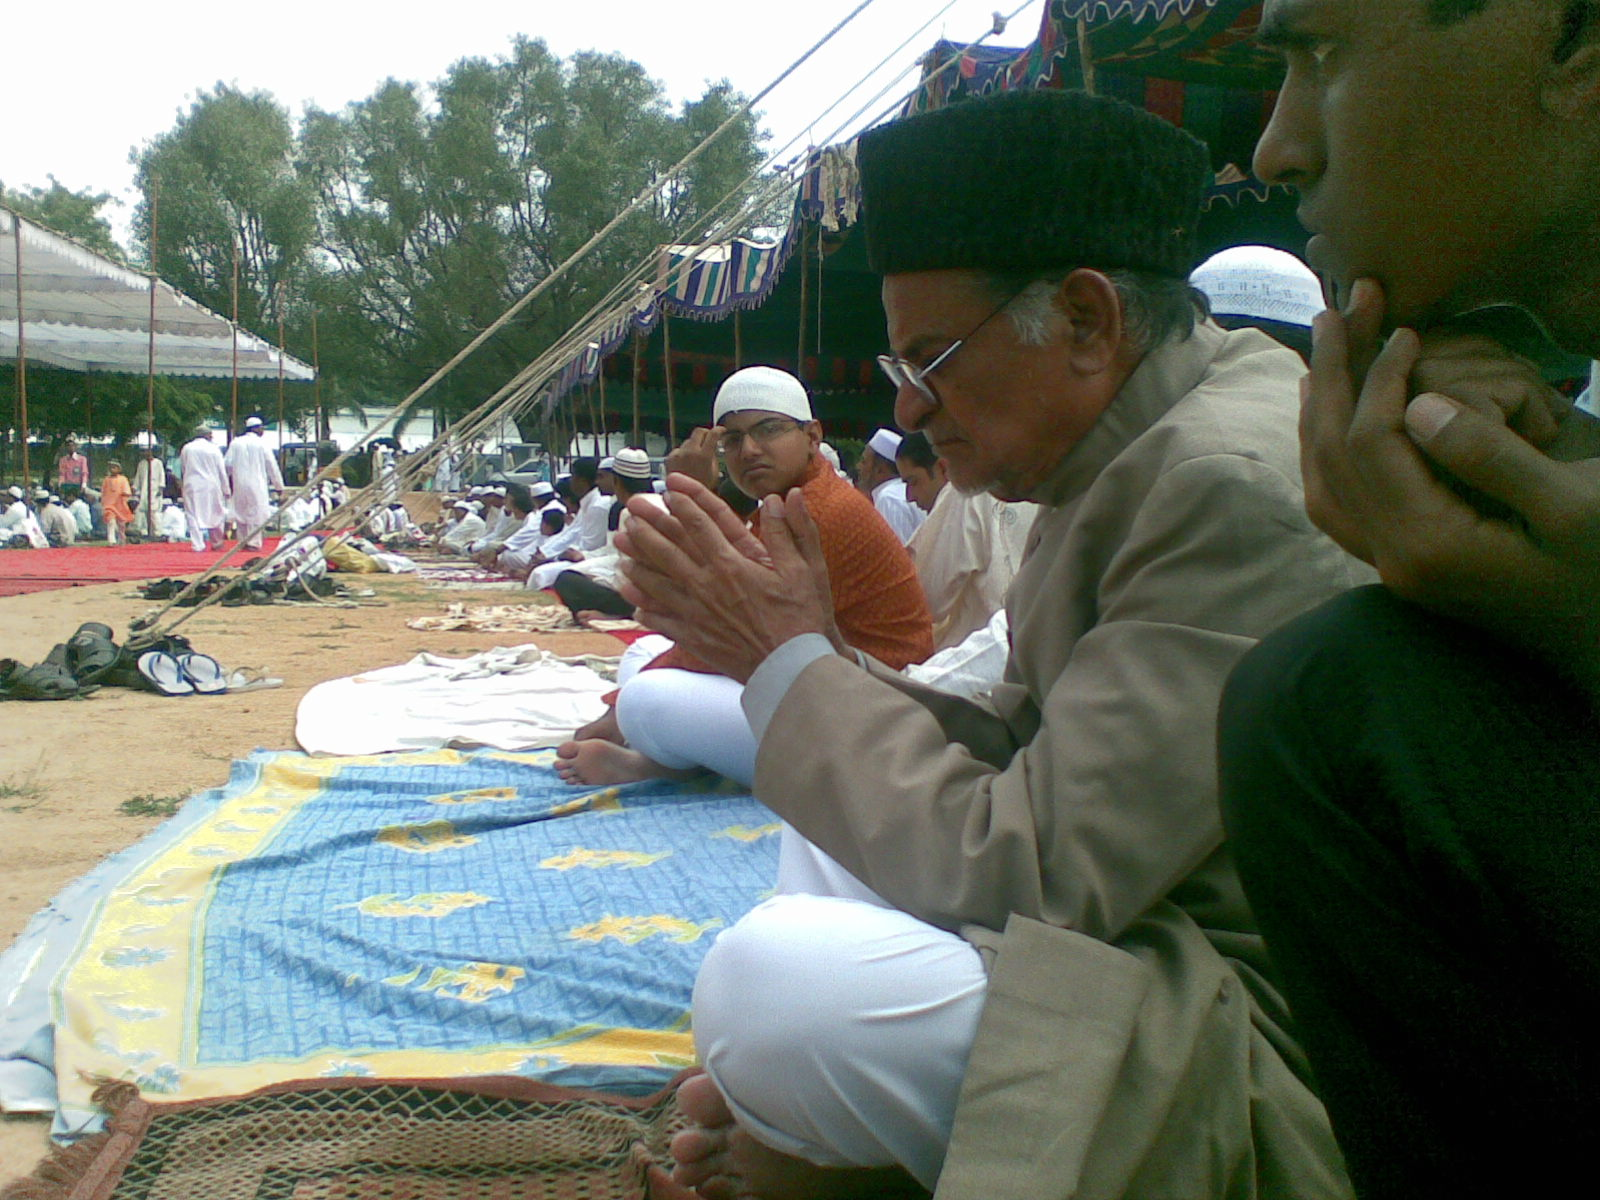 "A Reputed Scholar, Ex Advisor to Govt of India and Chief Engineer and A Religous Scholar who Wrote a very Popular Tafeer E Quran ""Qurani Irshadats"" in urdu is seen among the  Thousands of Muslims for Preayers on Idd ul Fitr Day at Hyderabad. On 21st of Sept Monday 2009"